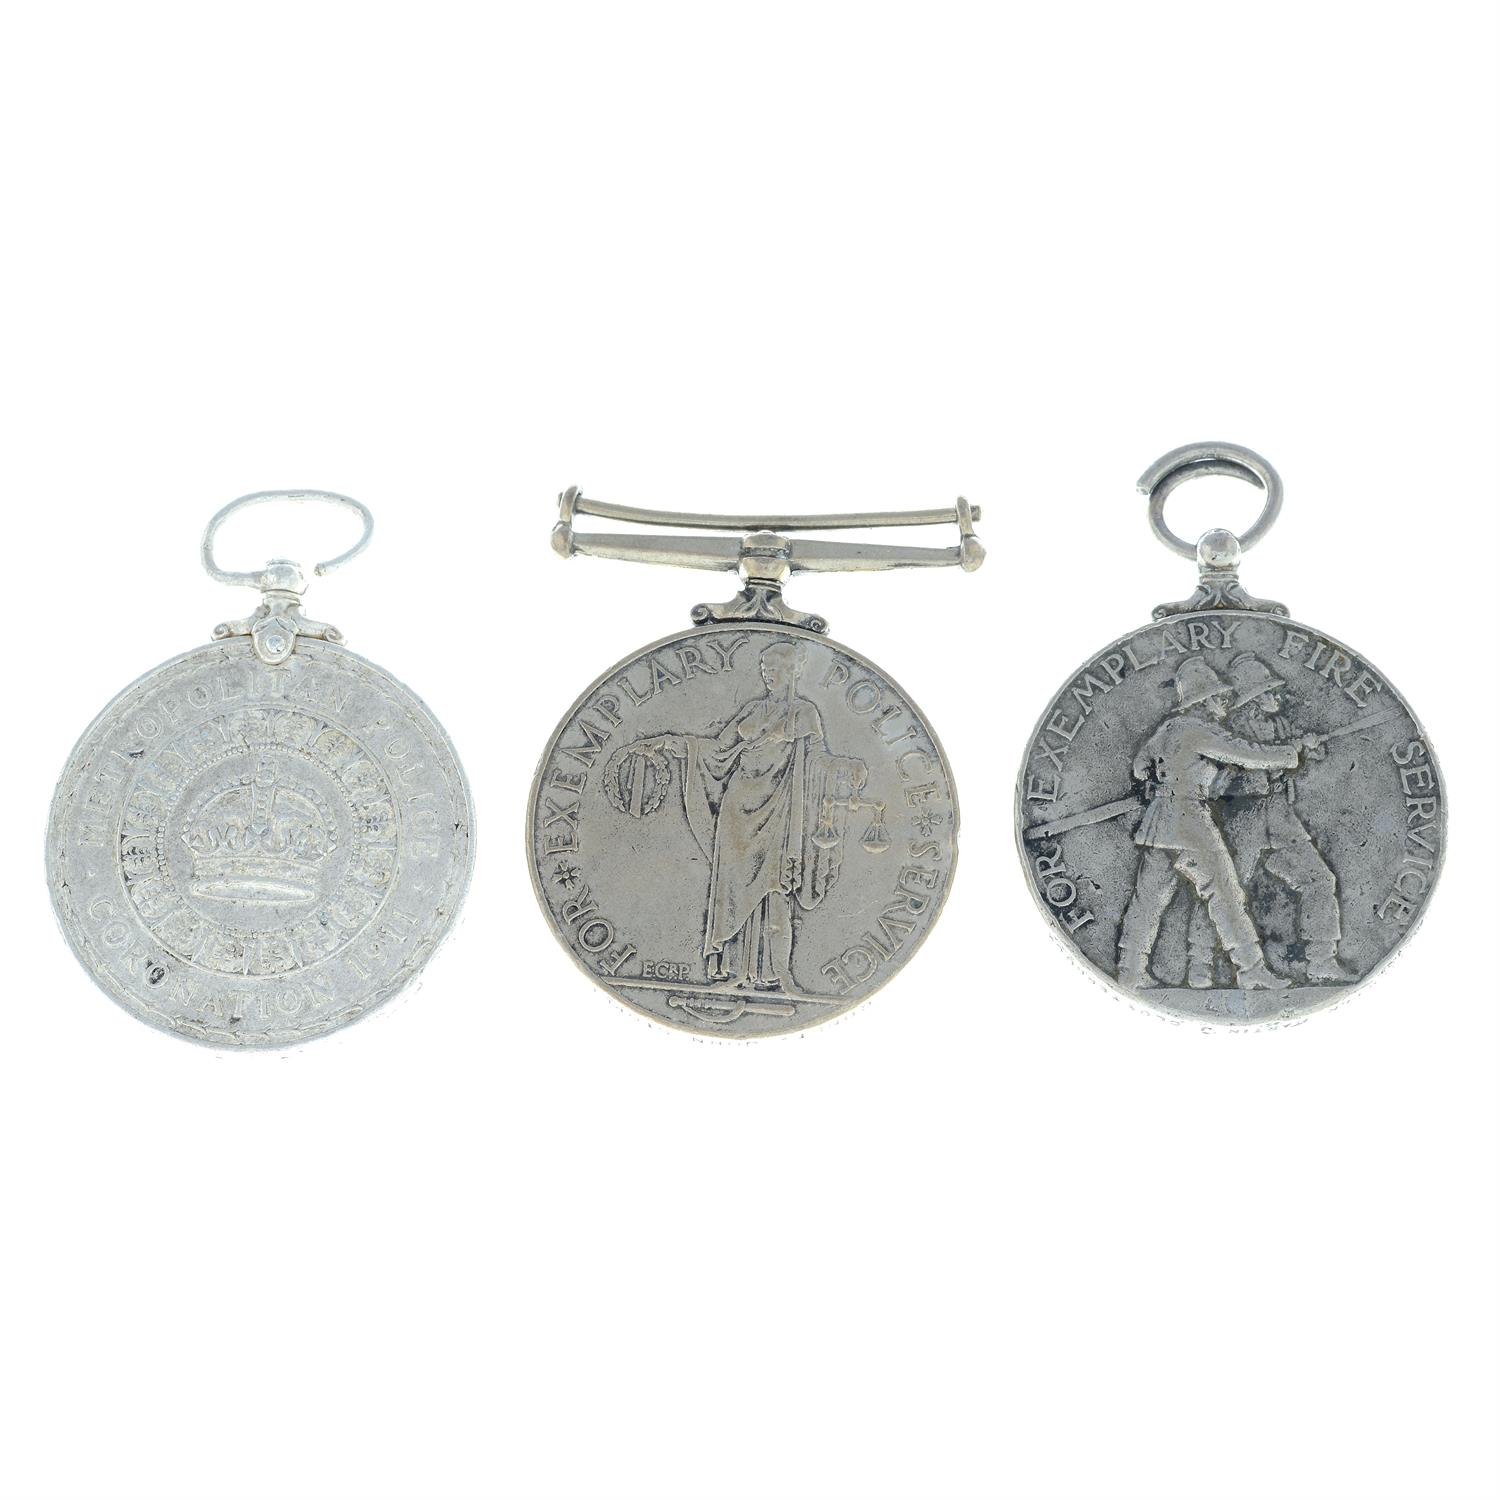 An assortment of civil medals, to include Police Long Service and Good Conduct medals, etc. (6). - Image 2 of 4